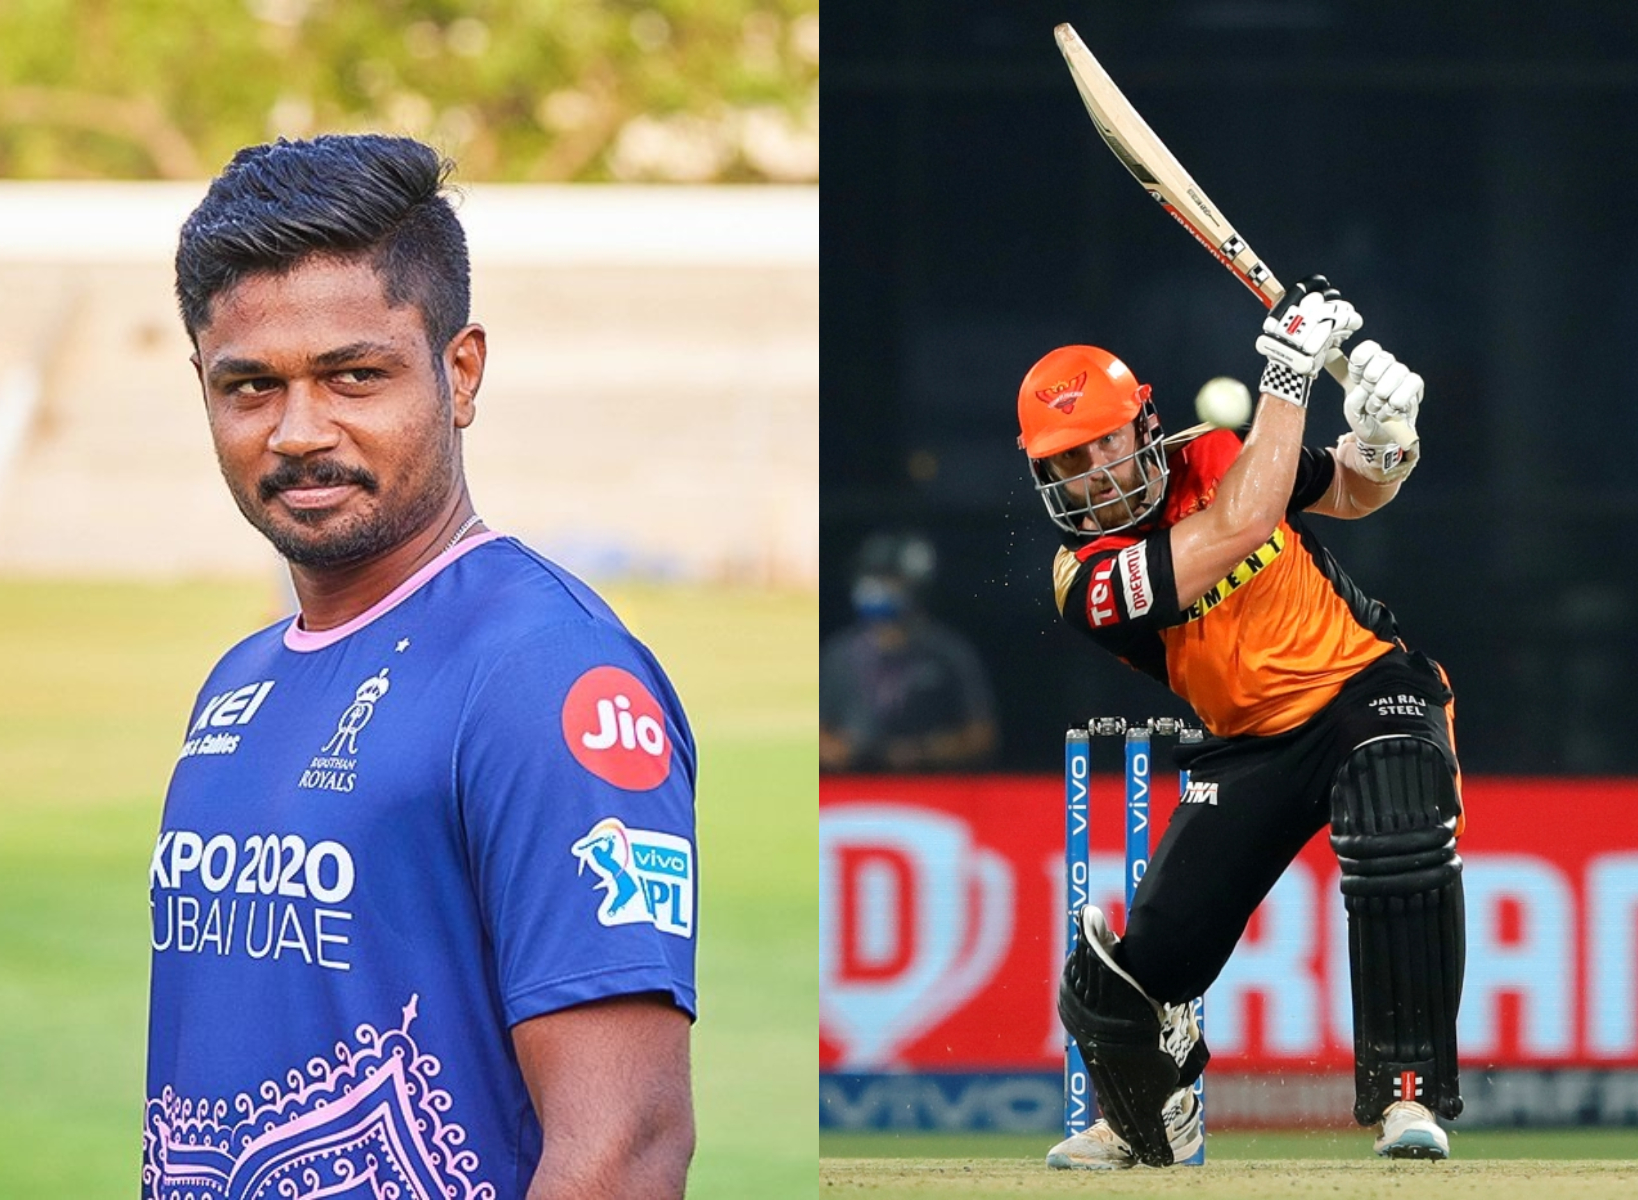 RR have won 2 matches out of 6 and SRH have won just one game | IPL-BCCI